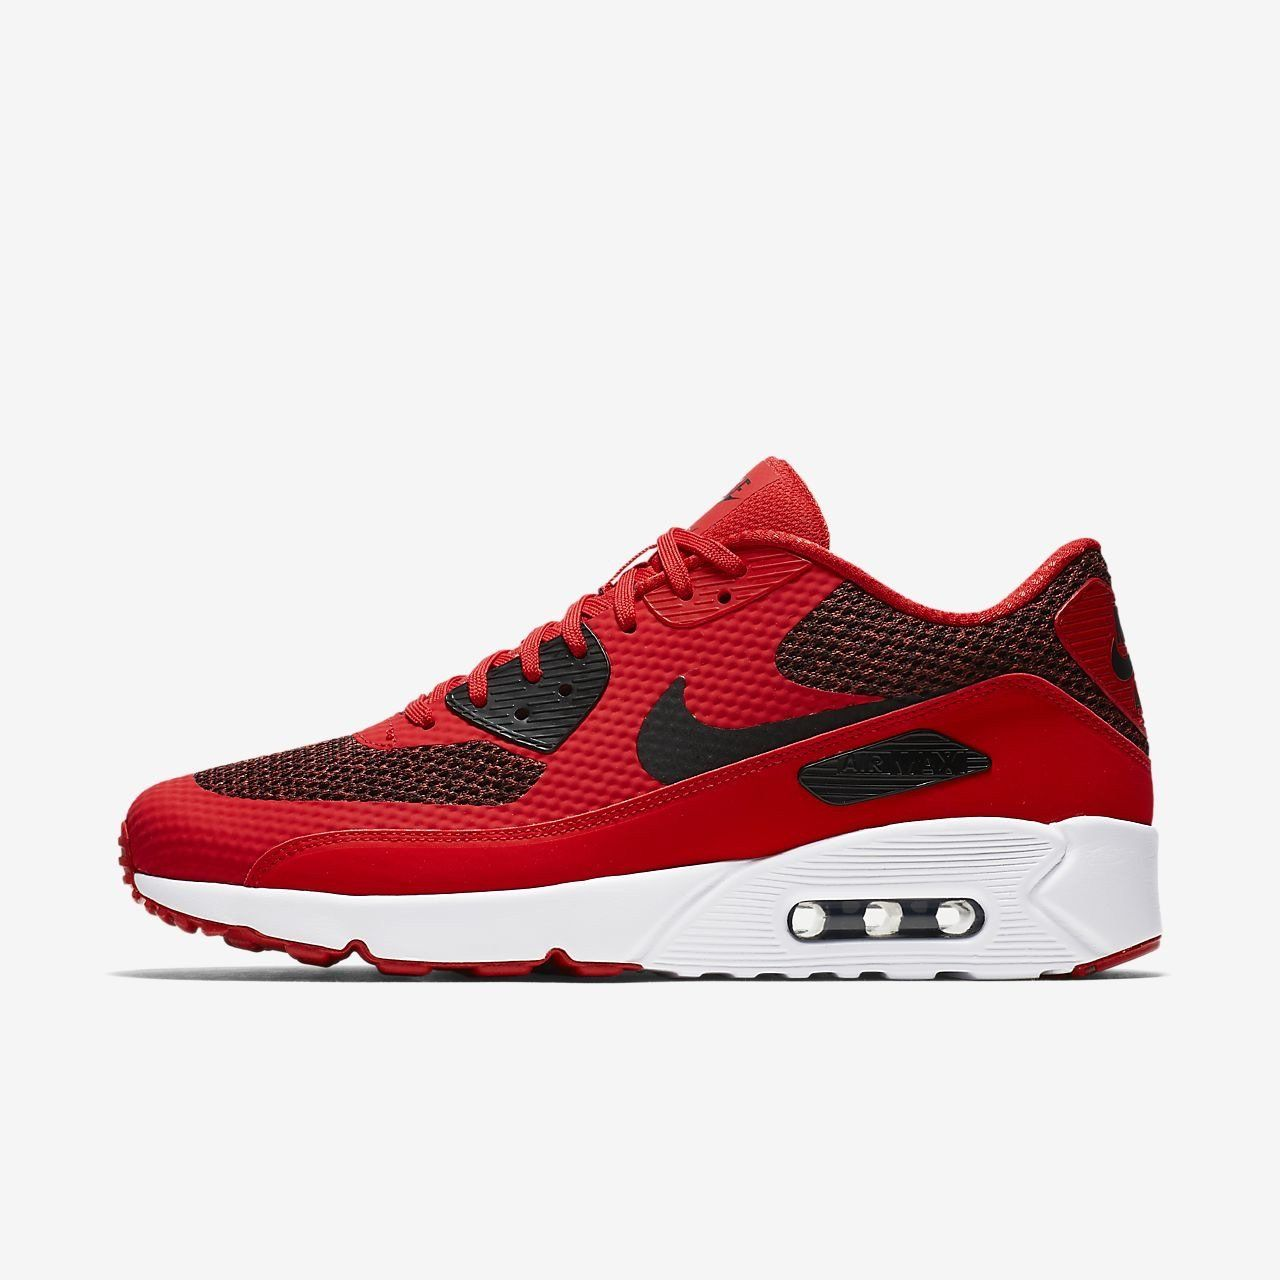 b4b9f98986 Nike Air Max 90 Ultra 2.0 Essential University Red in 2019 | Shoes ...